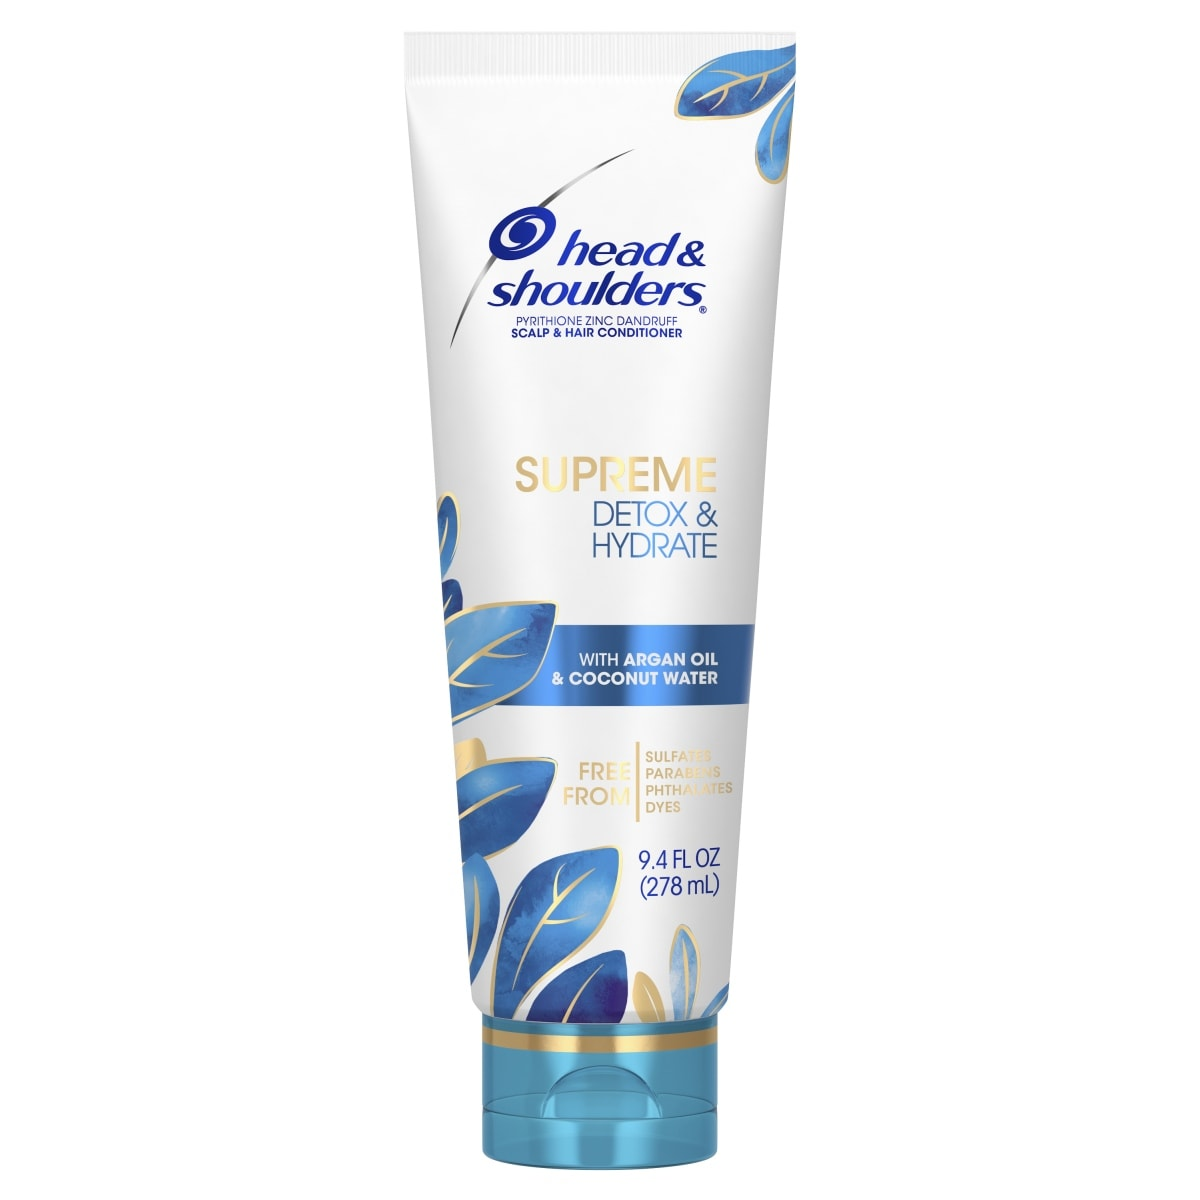 Head and Shoulders Supreme Detox & Hydrate Hair & Scalp Conditioner, 9.4 fl oz